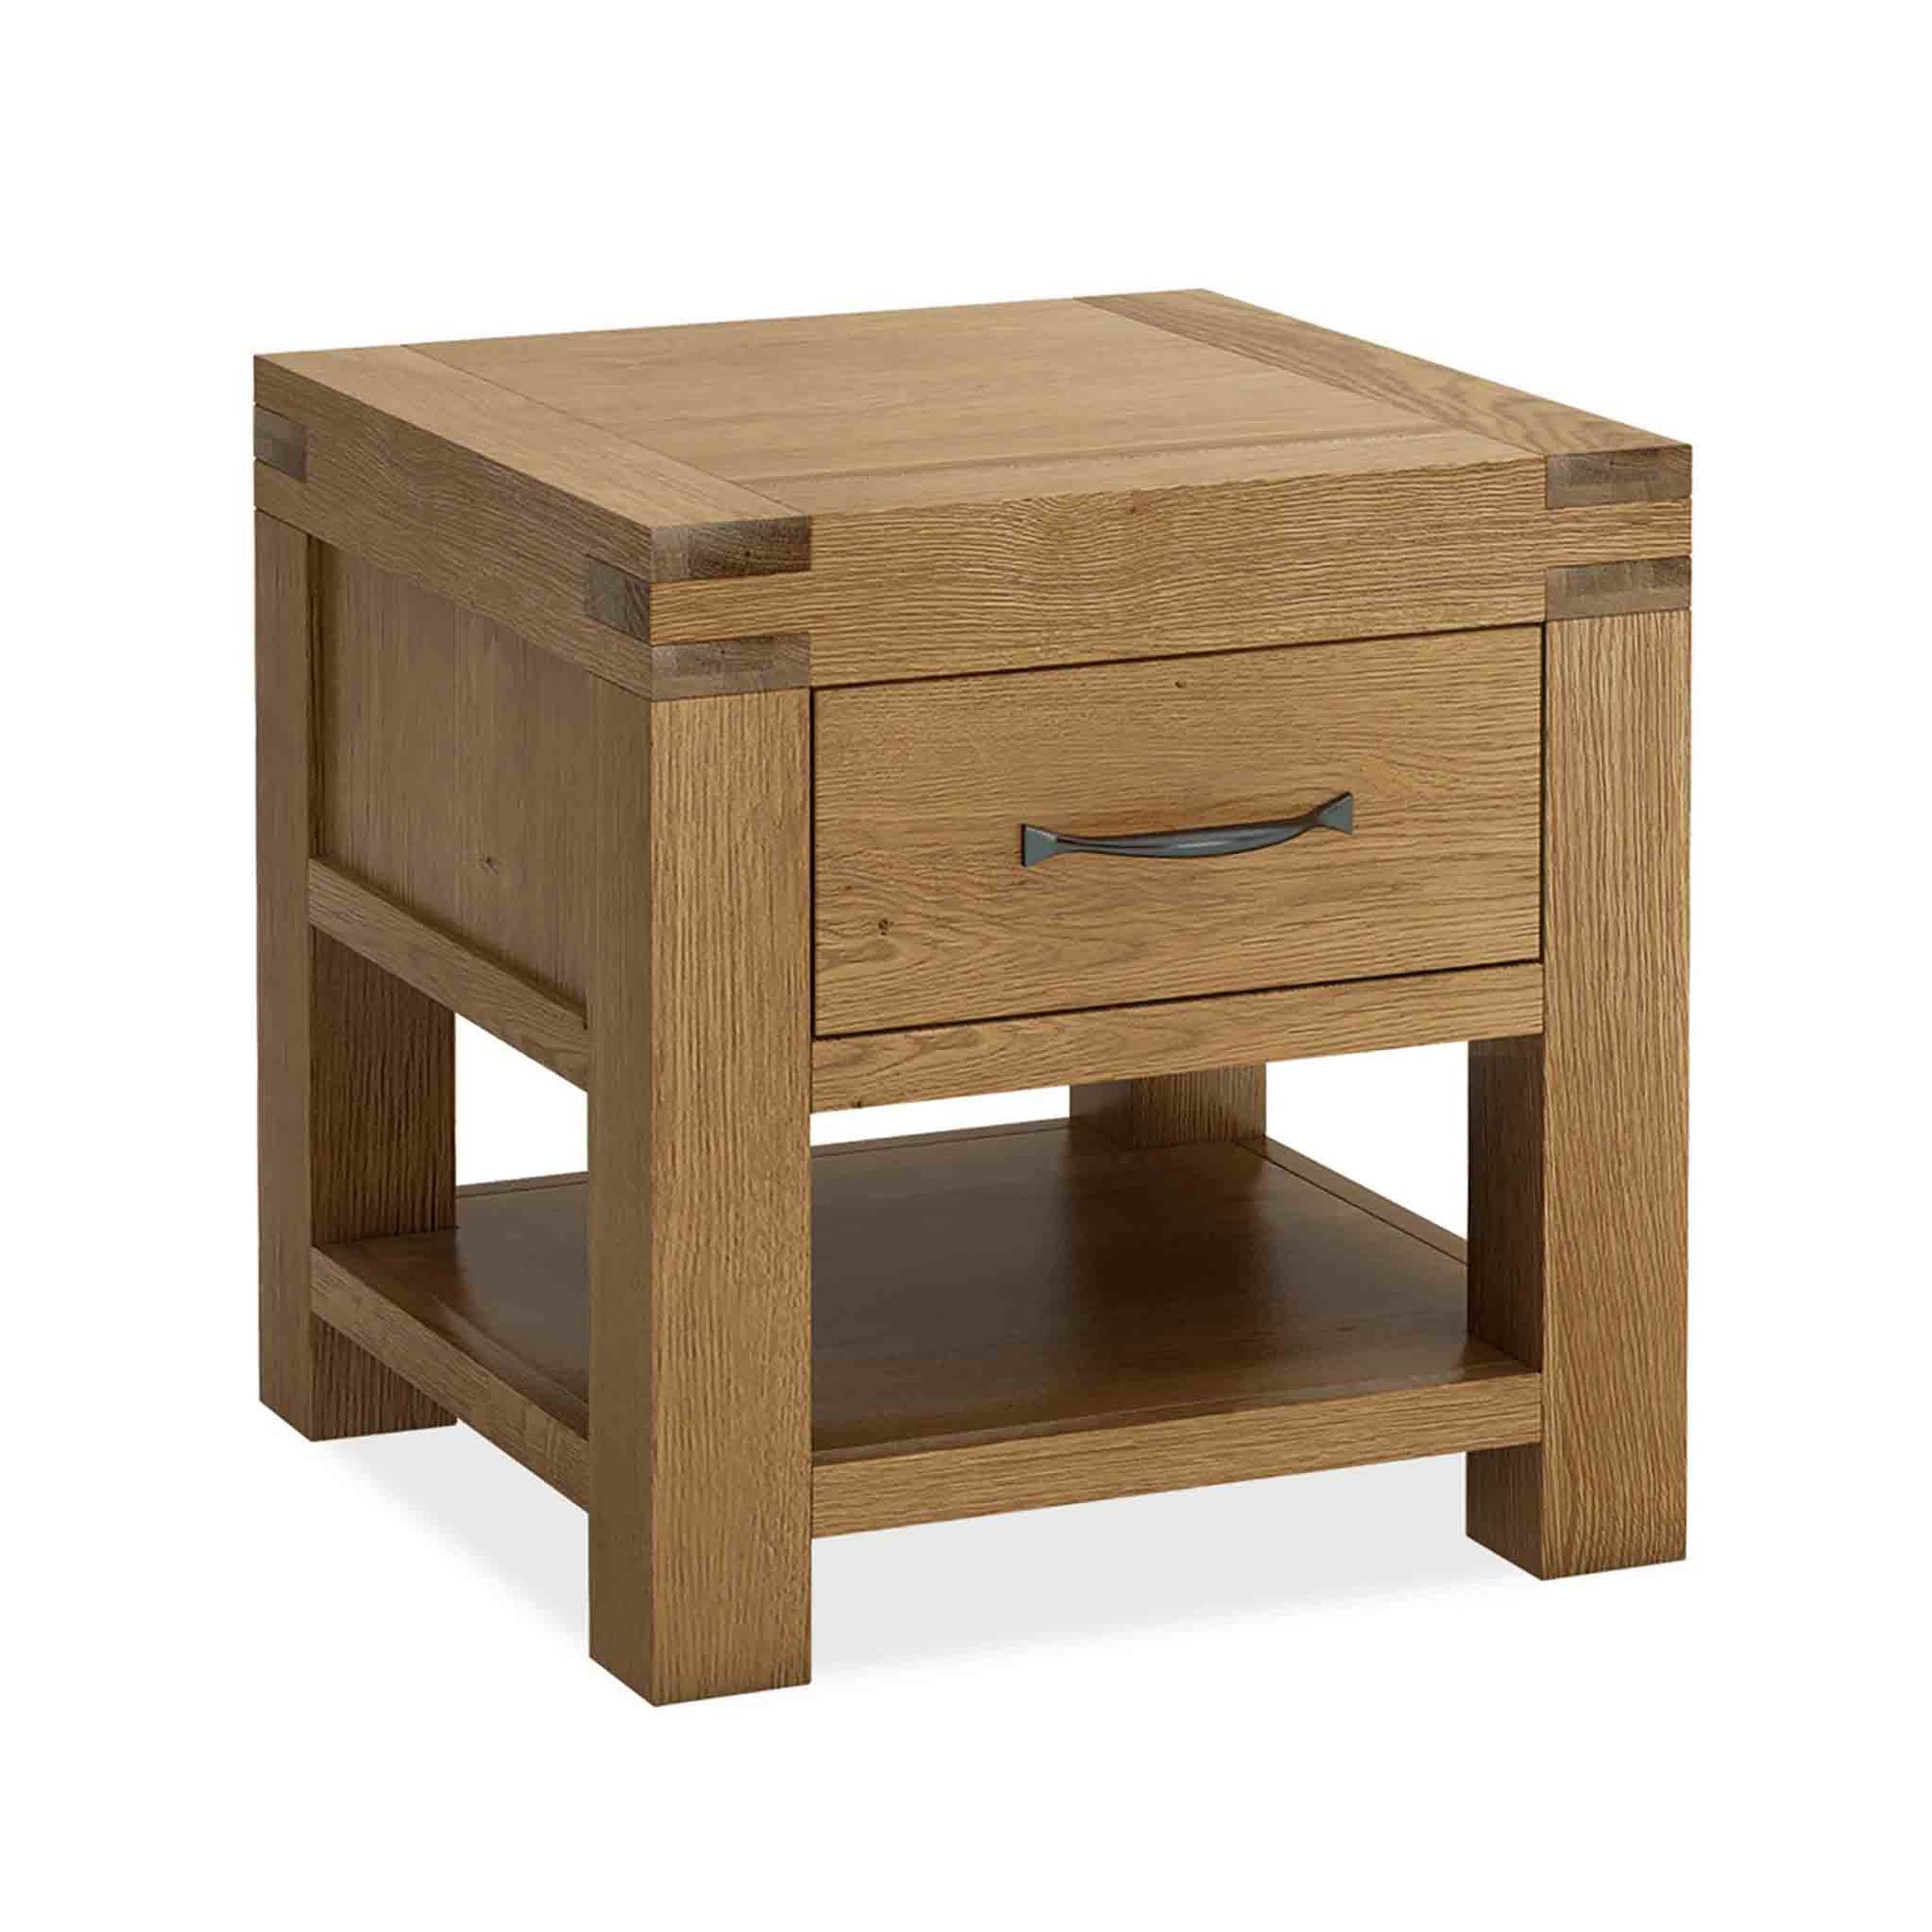 The Abbey Grande Oak Side Lamp Table by Roseland Furniture